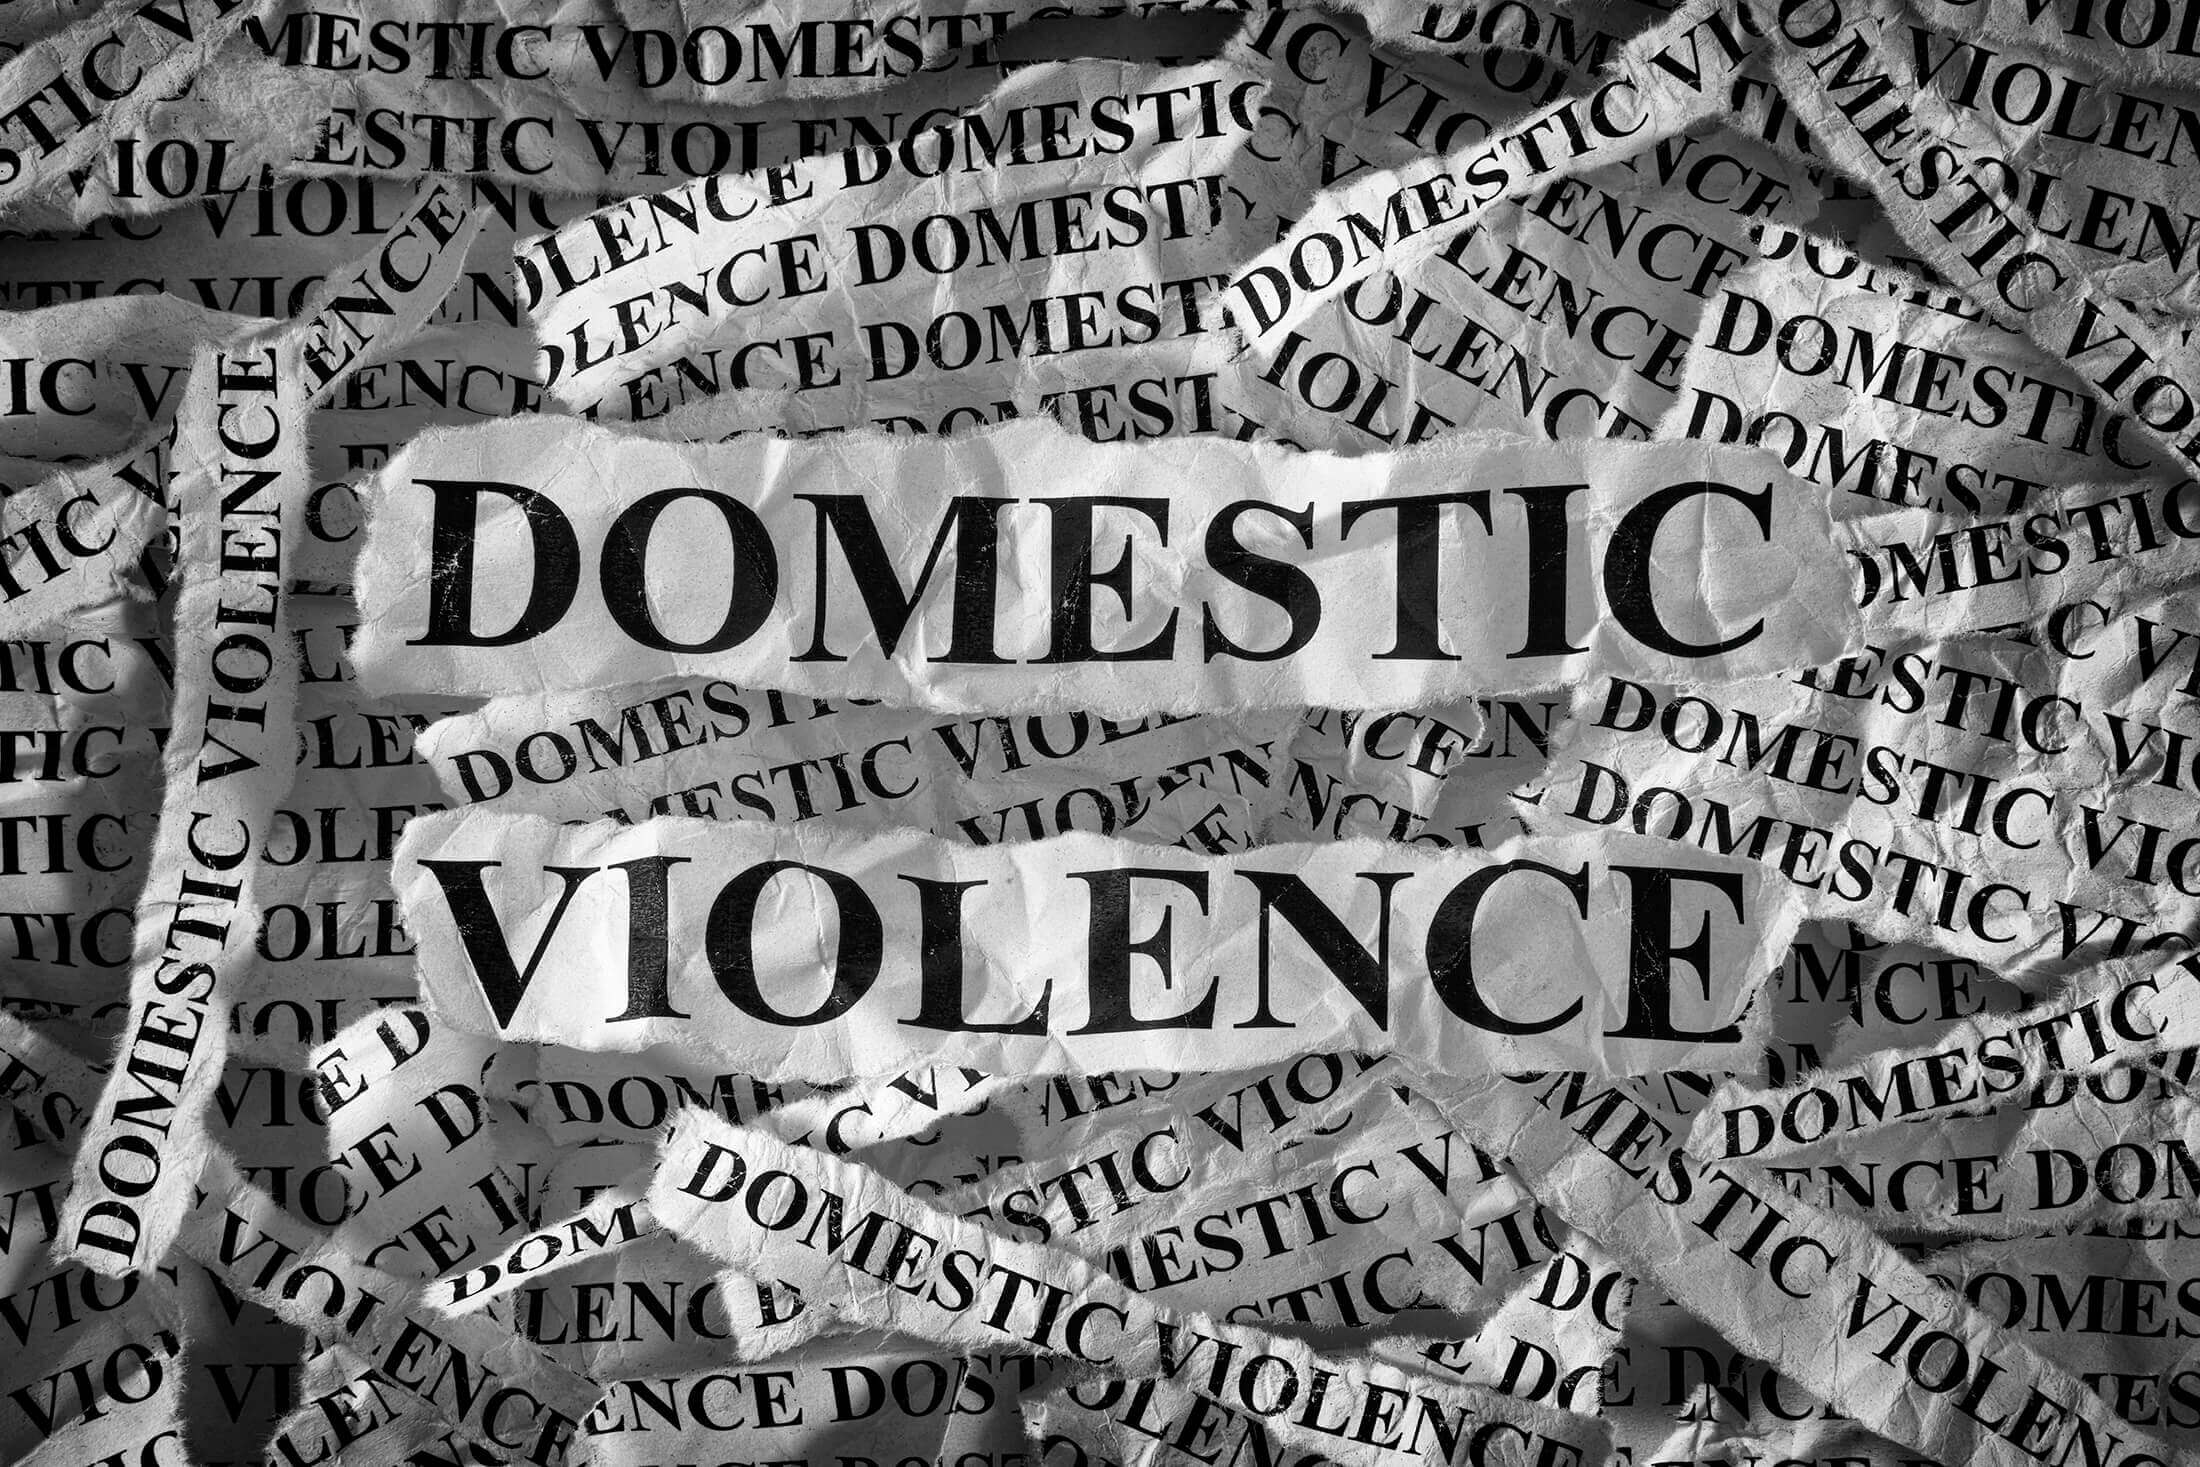 Domestic Violence Attorney Near Me | Cook County Illinois Law Firm